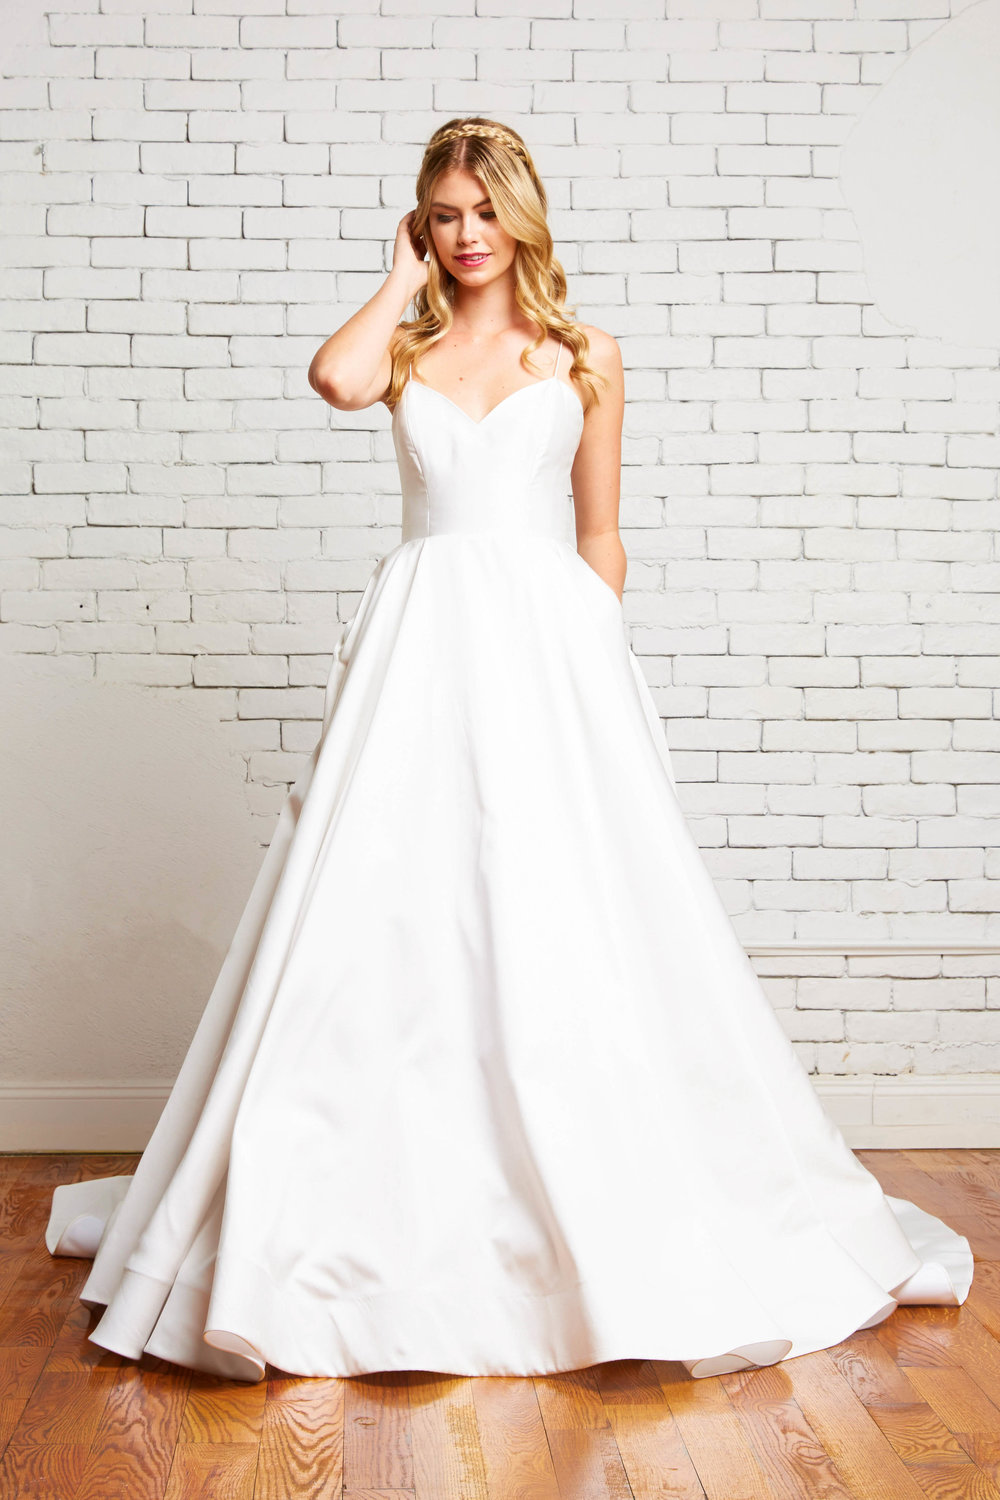 26A. Reese Front-Rebecca Schoneveld-2-153_sweetheart_neckline_modern_ball_gown_simple_with_pockets_and_buttons.jpg